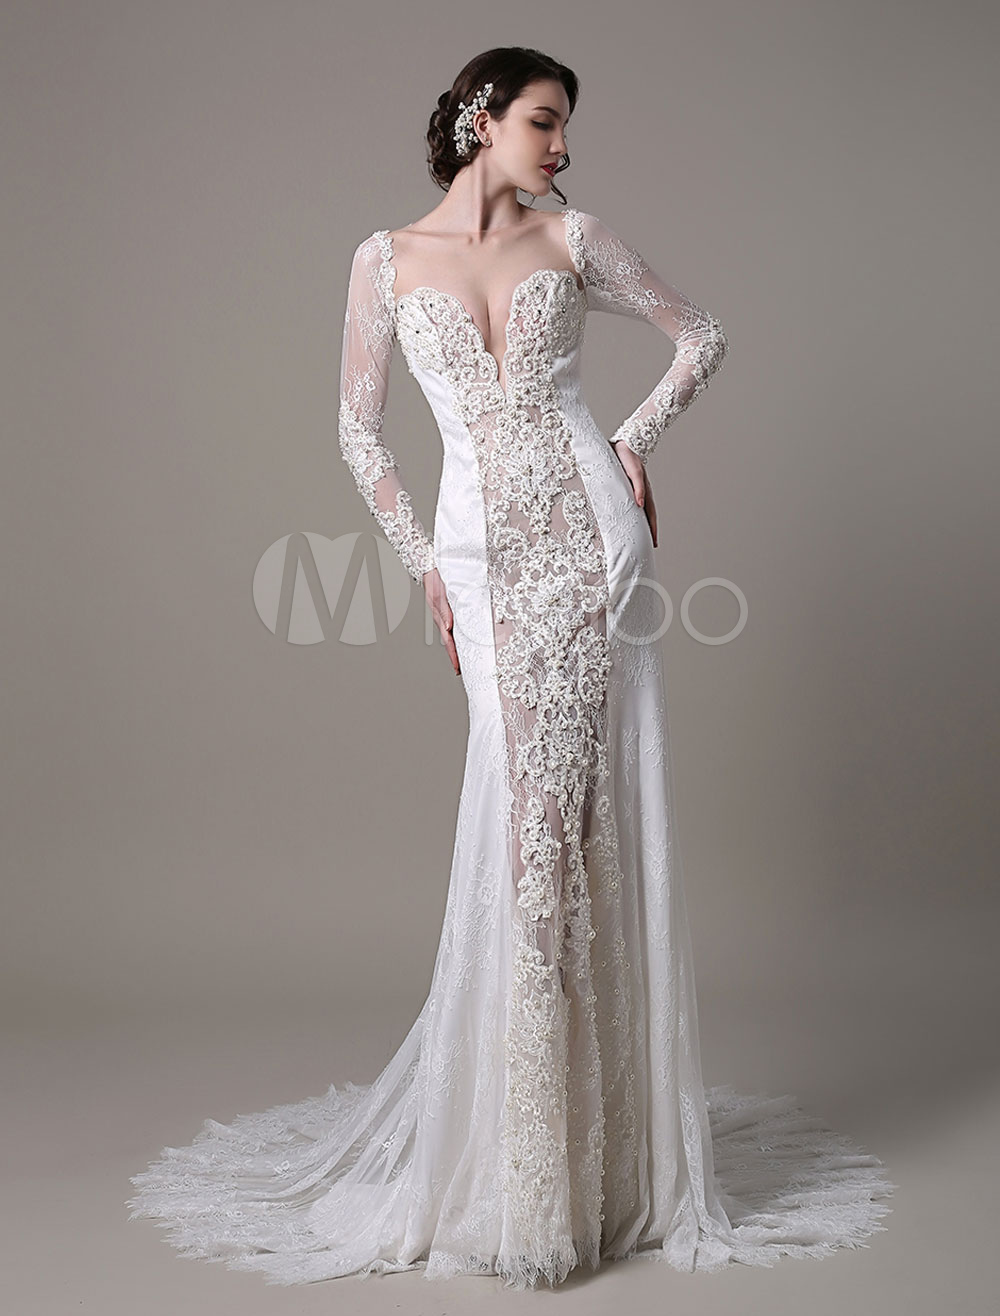 Lace Vintage Wedding Dress.Sexy Wedding Dresses Summer Beach Lace Long Sleeves Vintage Illusion V Neck Luxury Beaded Pearls Bridal Gowns Milanoo